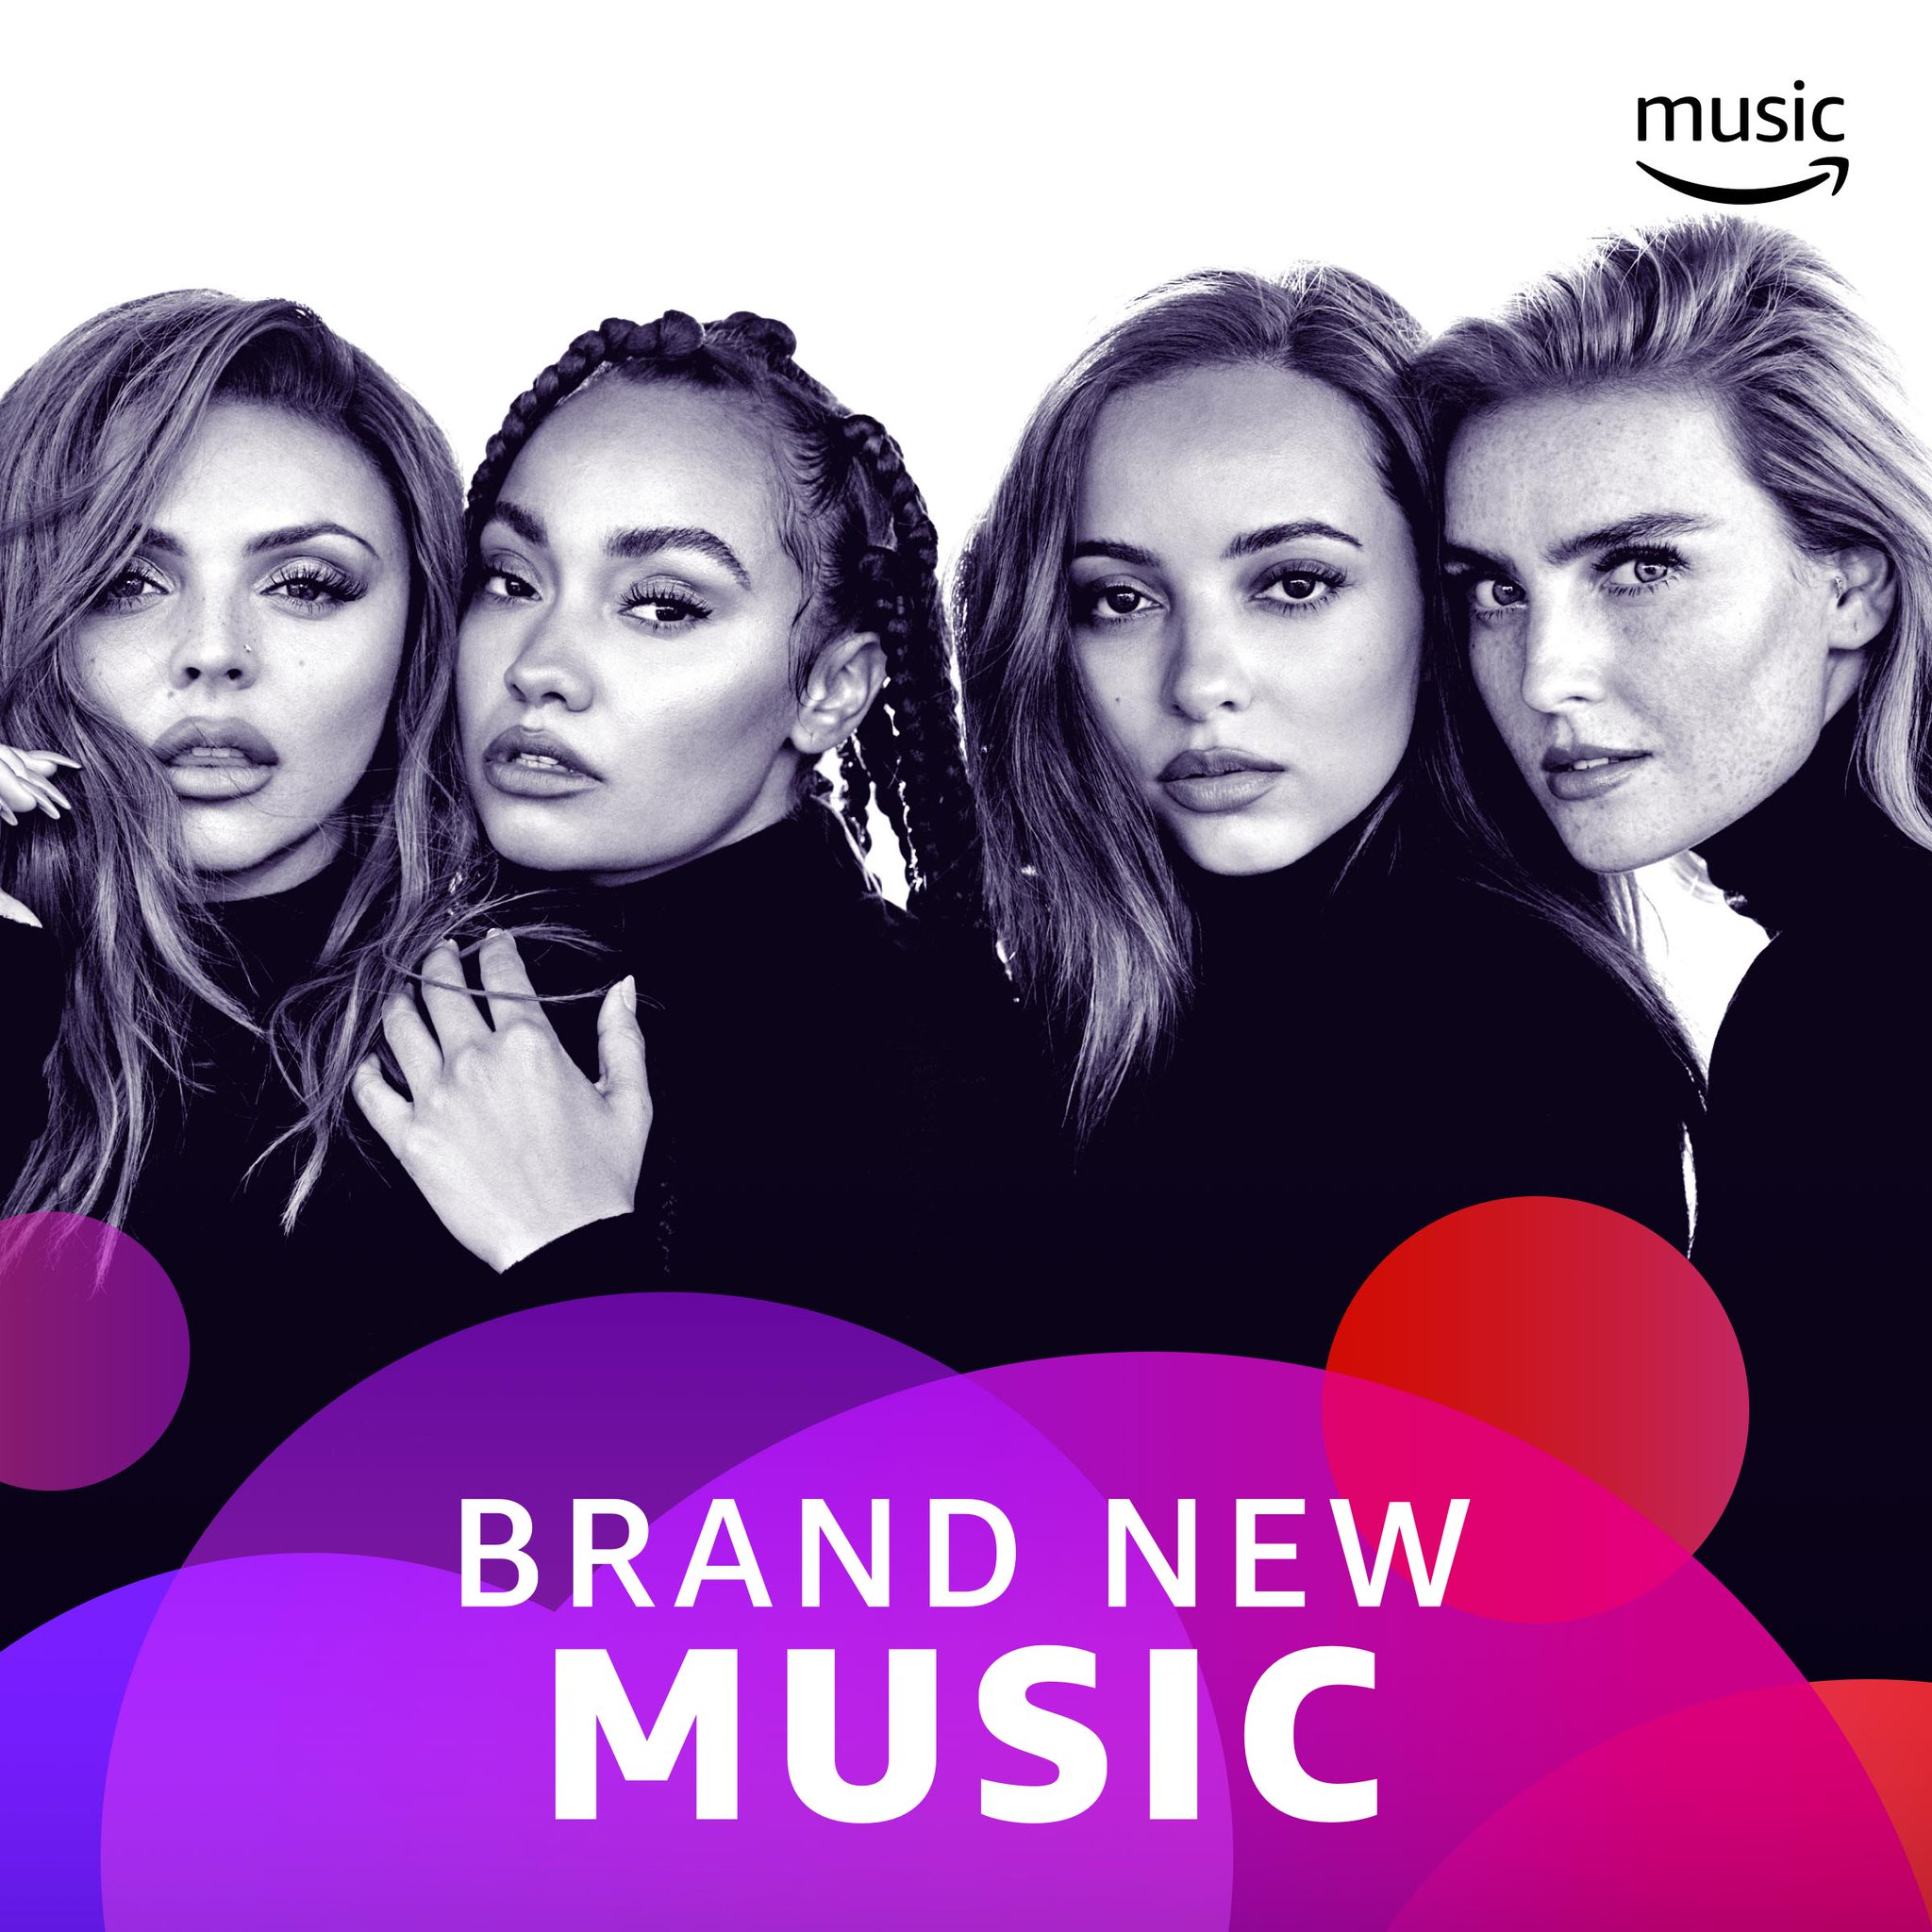 Thanks for all the love on #WomanLikeMe today @AmazonMusic & @AmazonMusicUK �� https://t.co/w76EwpDSa9 https://t.co/JEUmG0ogpm